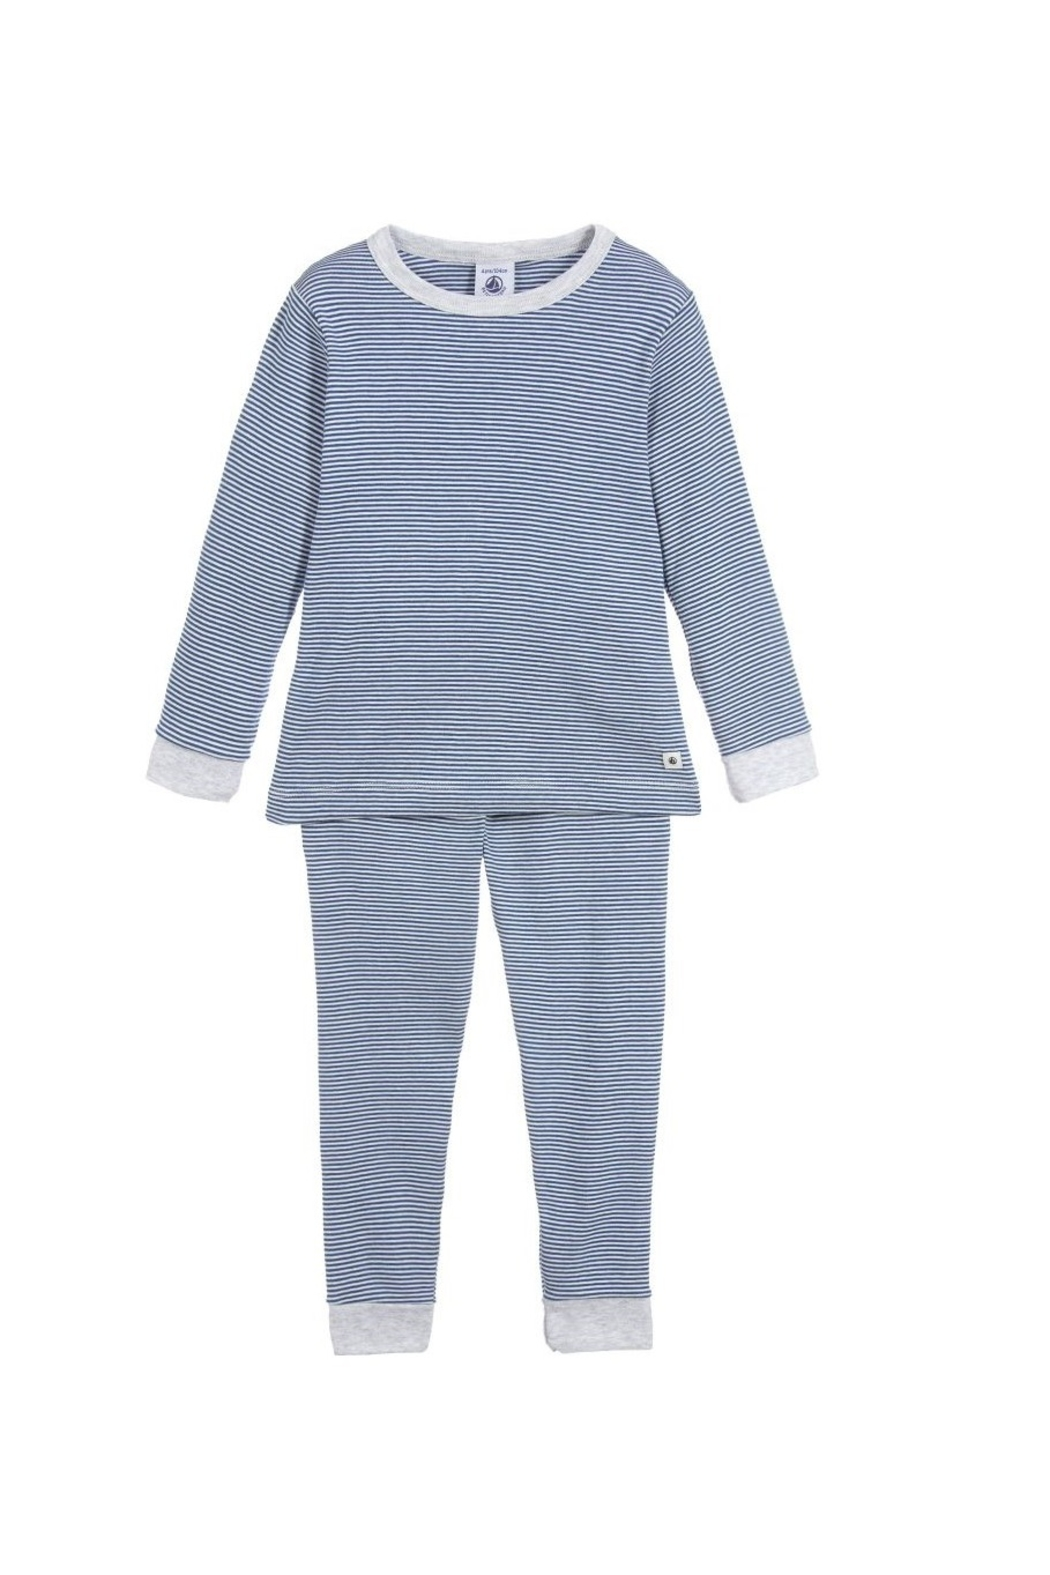 Petit Bateau Boys Pajamas - Milleraies striped knit - Main Image